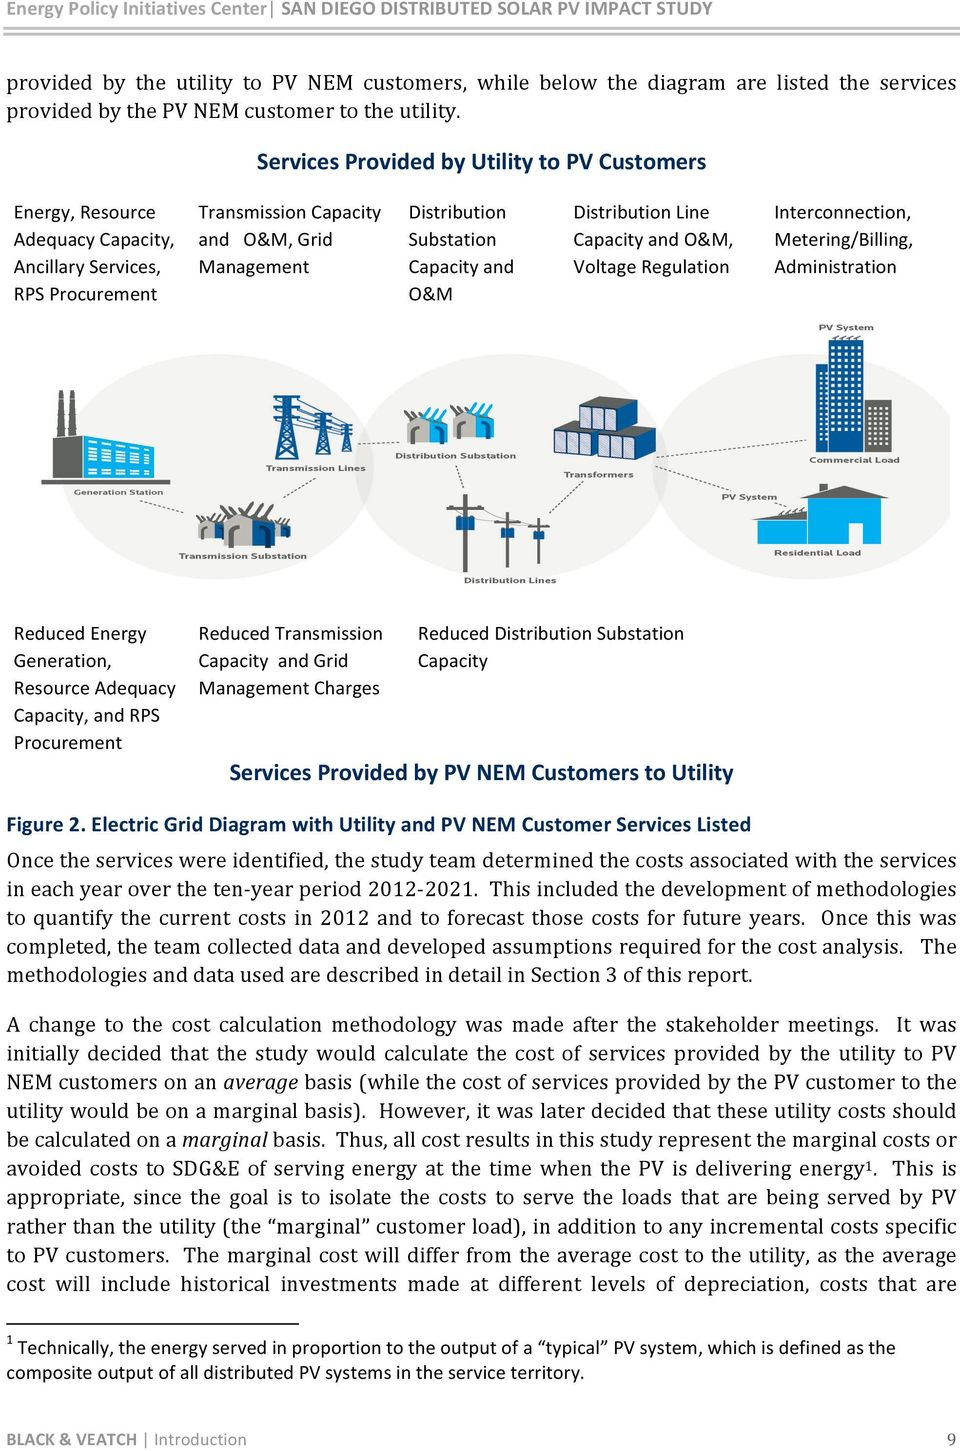 and O&M Distribution Line Capacity and O&M, Voltage Regulation Interconnection, Metering/Billing, Administration Reduced Energy Generation, Resource Adequacy Capacity, and RPS Procurement Reduced